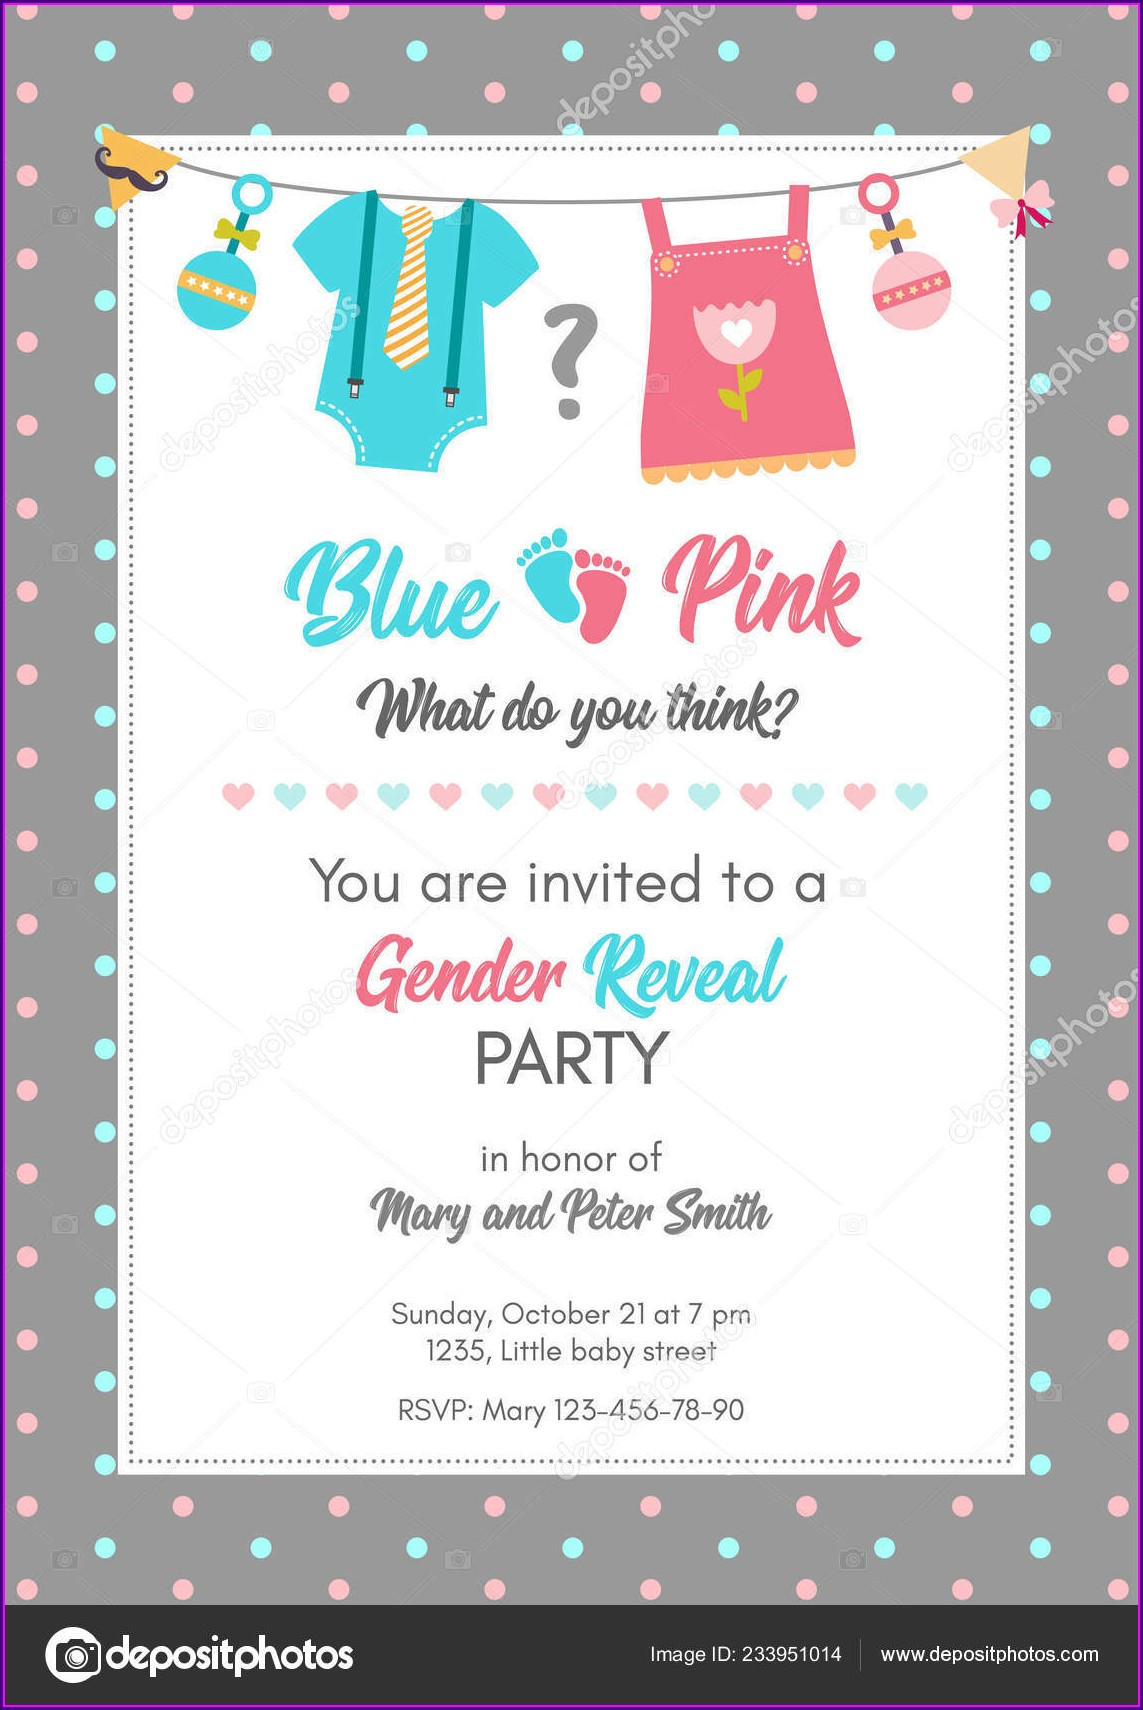 Downloadable Gender Reveal Invitation Template